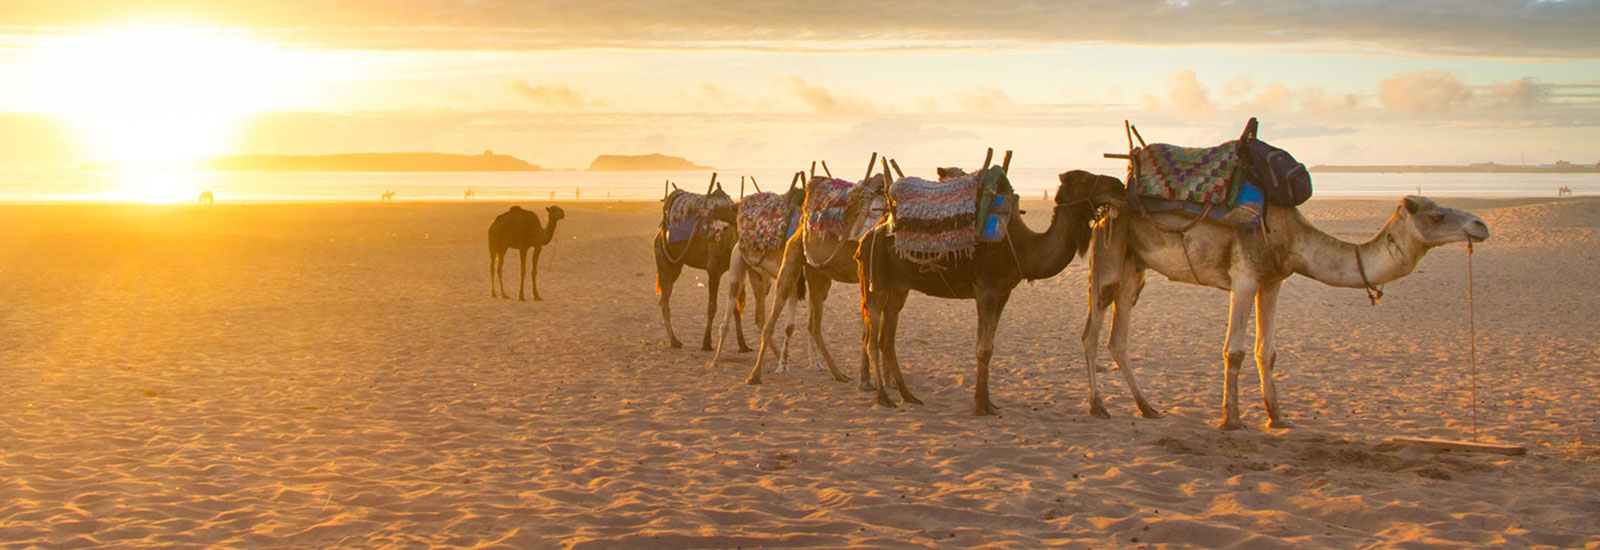 Camel Safari Los Cabos: Adventure, Tequila & Local Cuisine